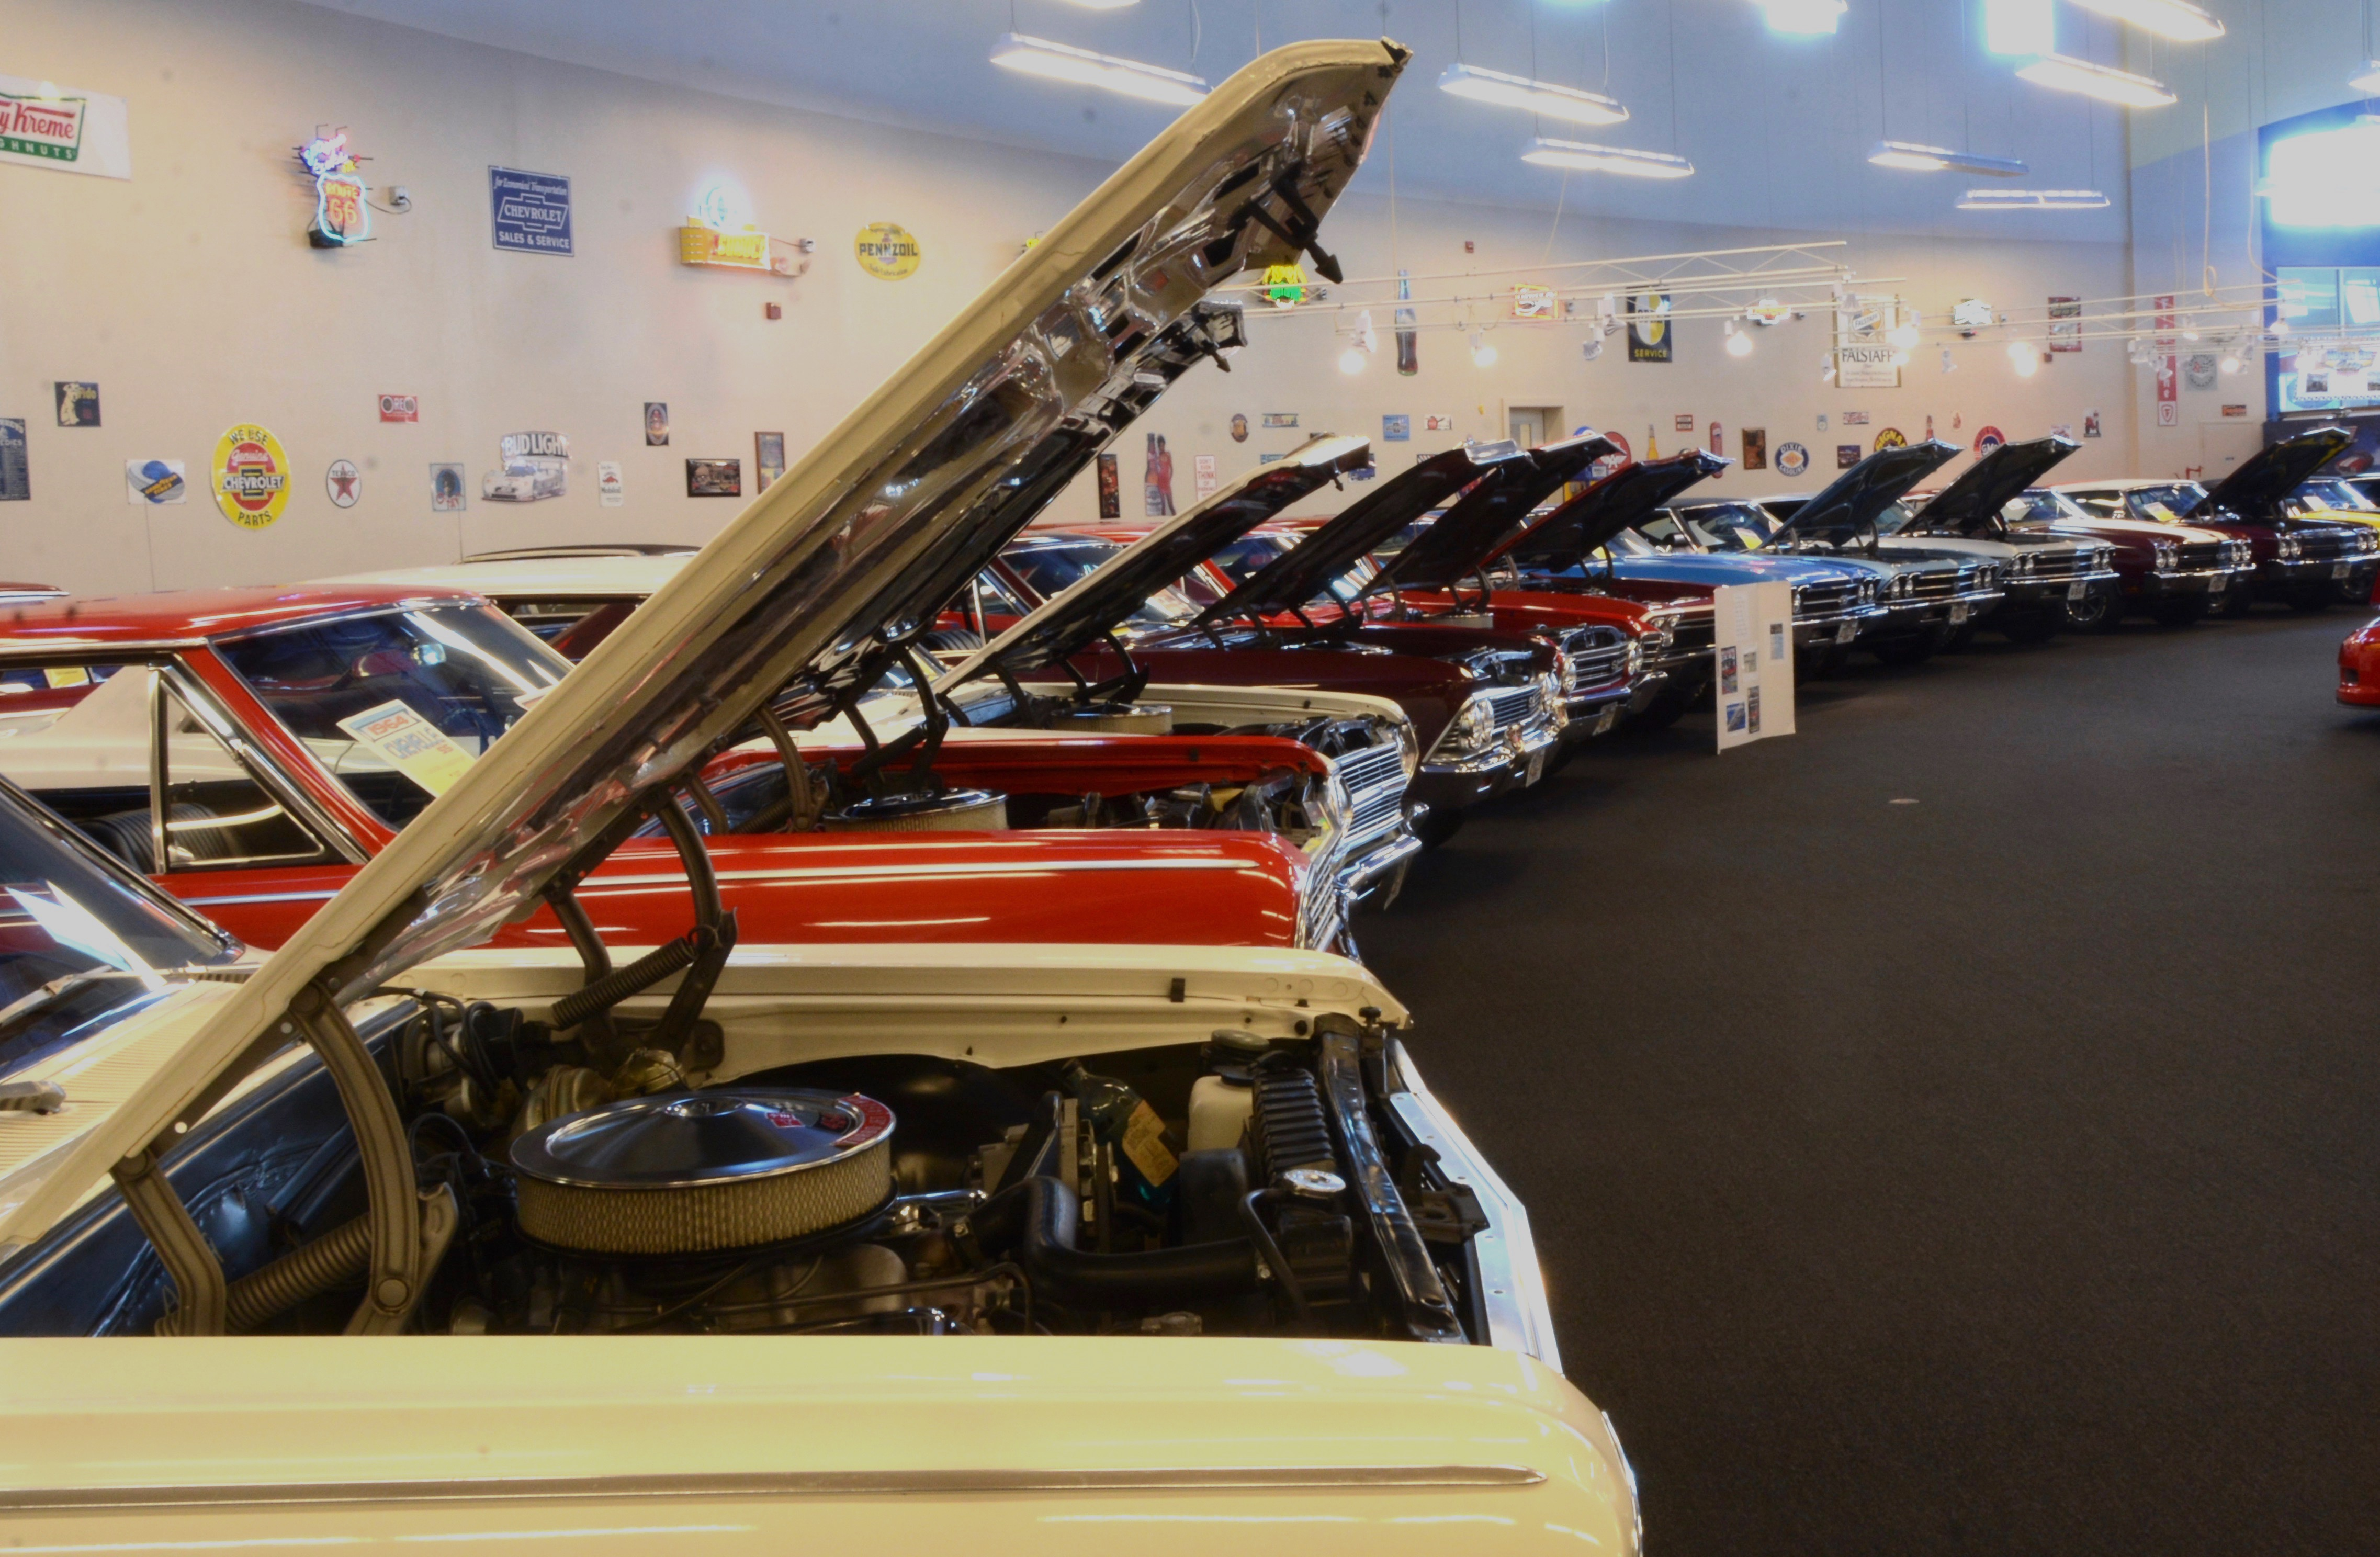 museum, One museum features mini-Indy, but another museum is closing, ClassicCars.com Journal